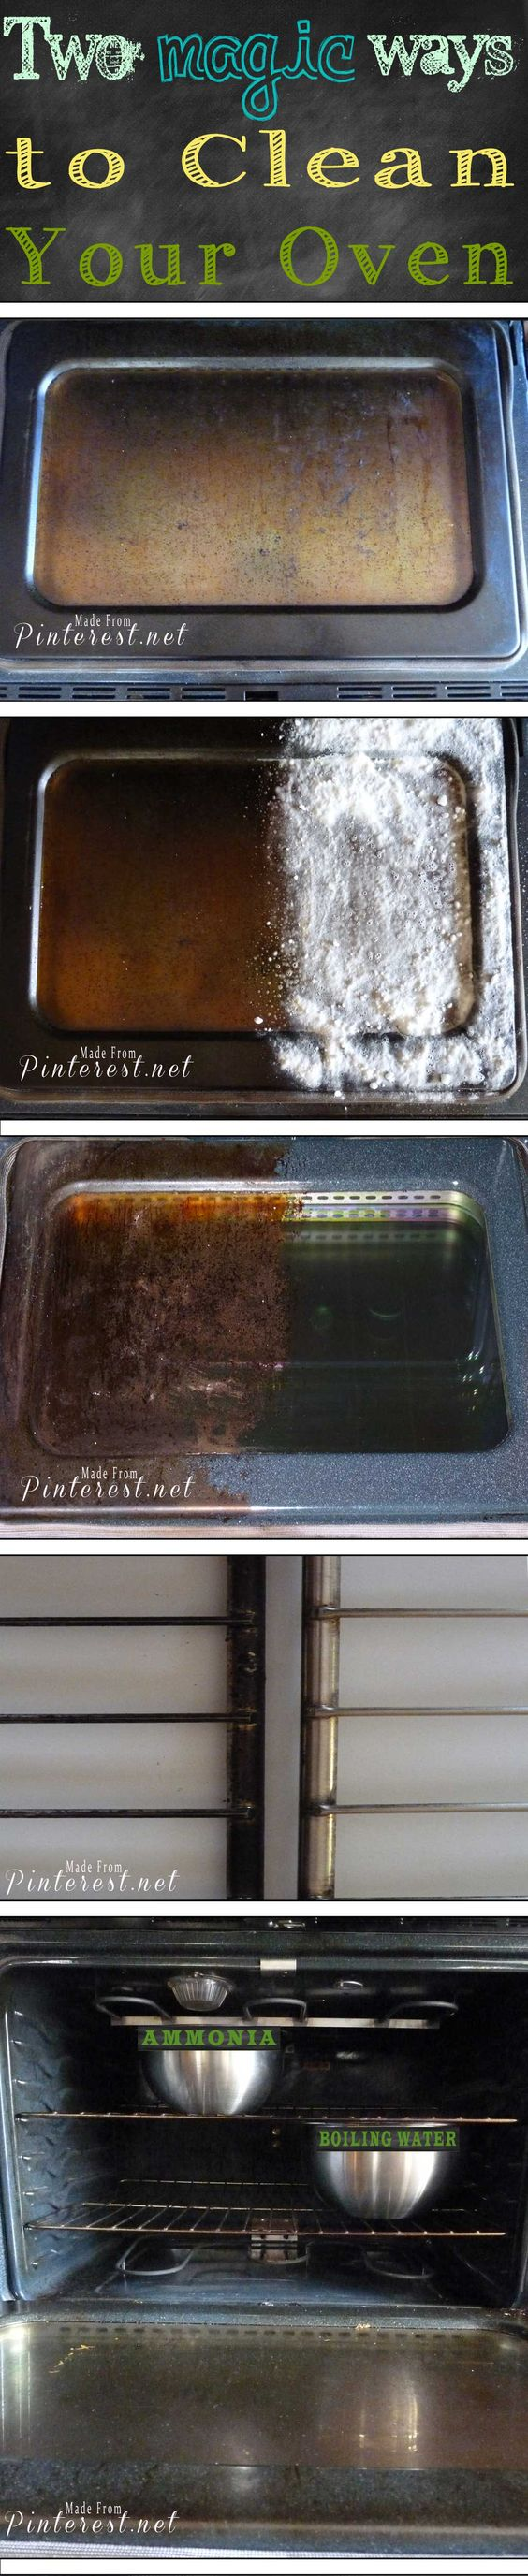 Magic #Oven Cleaning Method - If I had known it was this easy to get my disgusting dirty oven clean so fast and easy I would have cleaned it much sooner! I would also clean it every couple of months! Do your 5 minute prep the night before, wake up the next morning, wipe it clean and you are done! AWESOME!!: